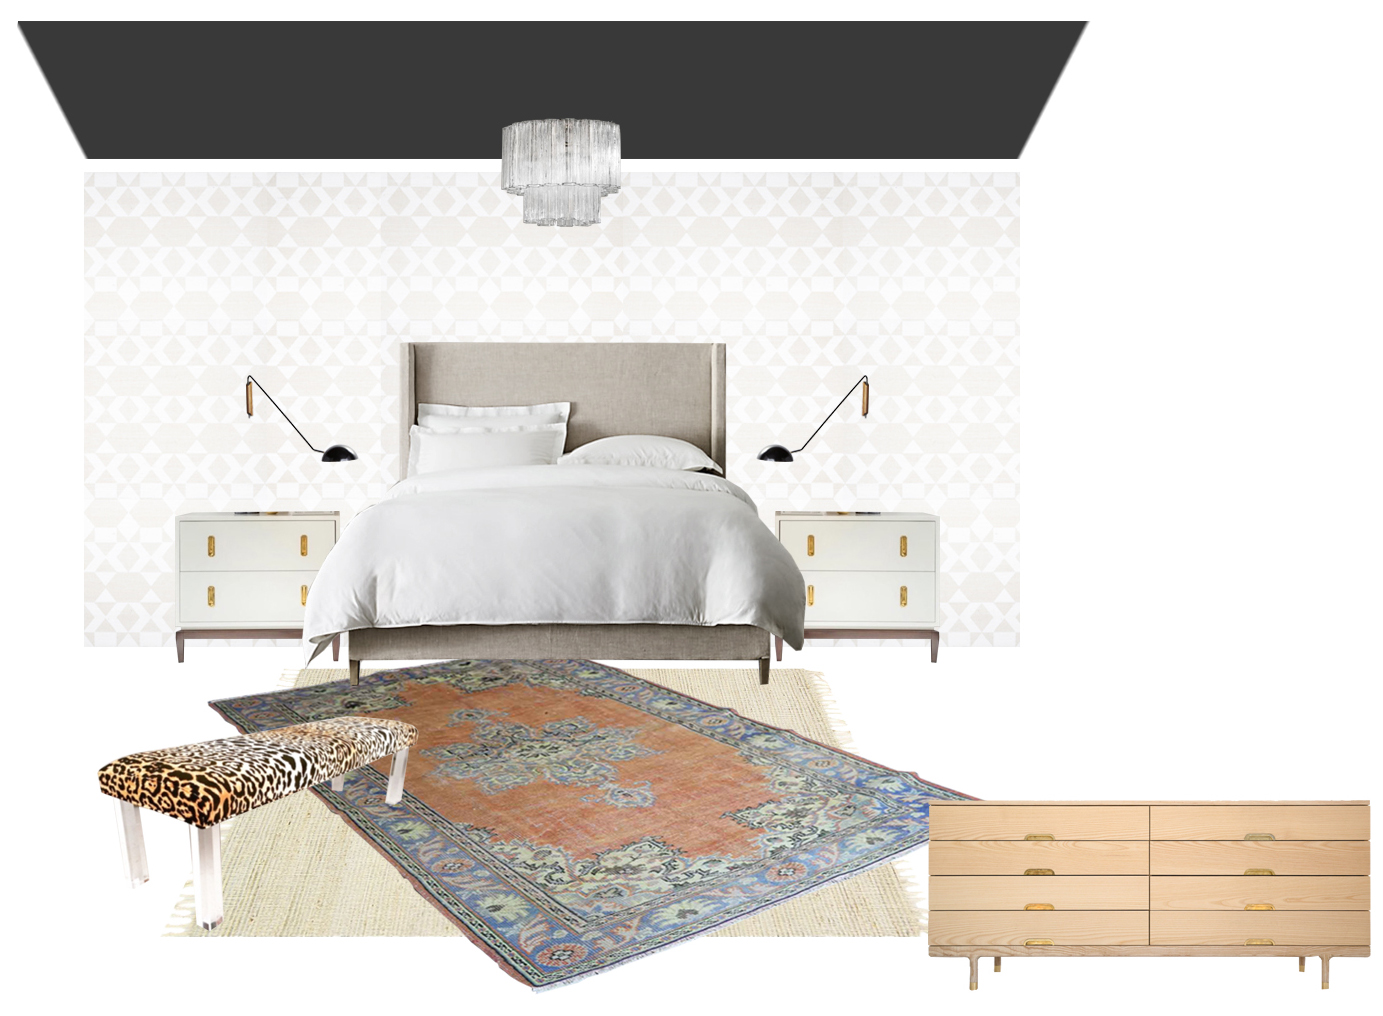 layered rug design board